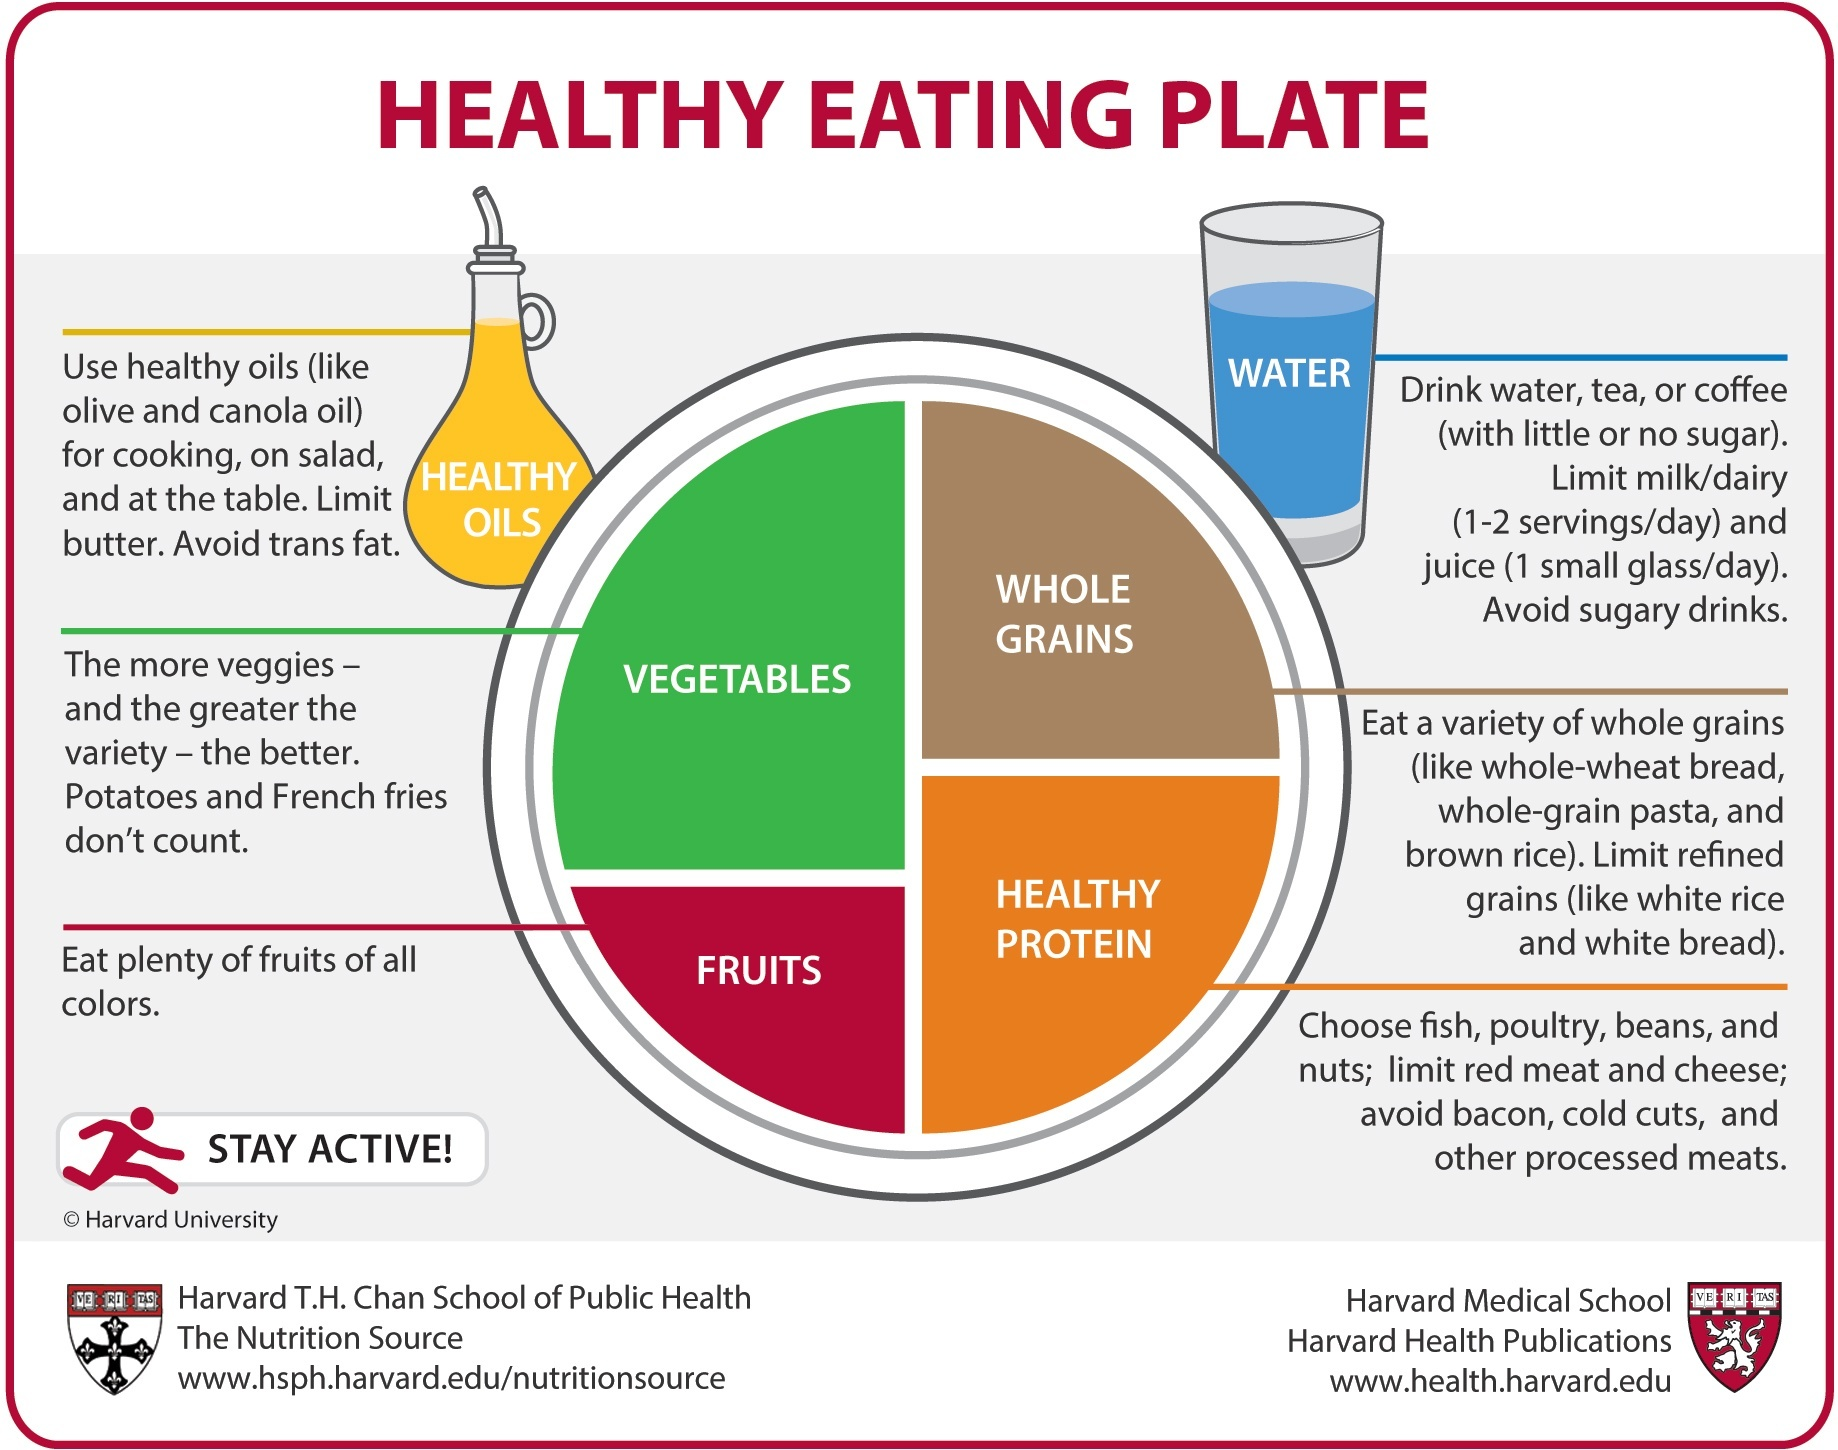 A plate is shown which is divided into 4 parts. Half of the plate is Fruits and Vegetables (with the vegetables being a larger segment). And the other half is grains and protein, with the protein being a slightly larger segment. Water and a bottle of oil is shown on the side. The guide also specifies to eat a variety of vegetables (potatoes and French fries don't count); use healthy oils like olive and canola oil; limit dairy to 1-2 servings a day; eat a variety of whole grains; limit red meat, cheese, avoid bacon, cold cuts, and other processed meats.